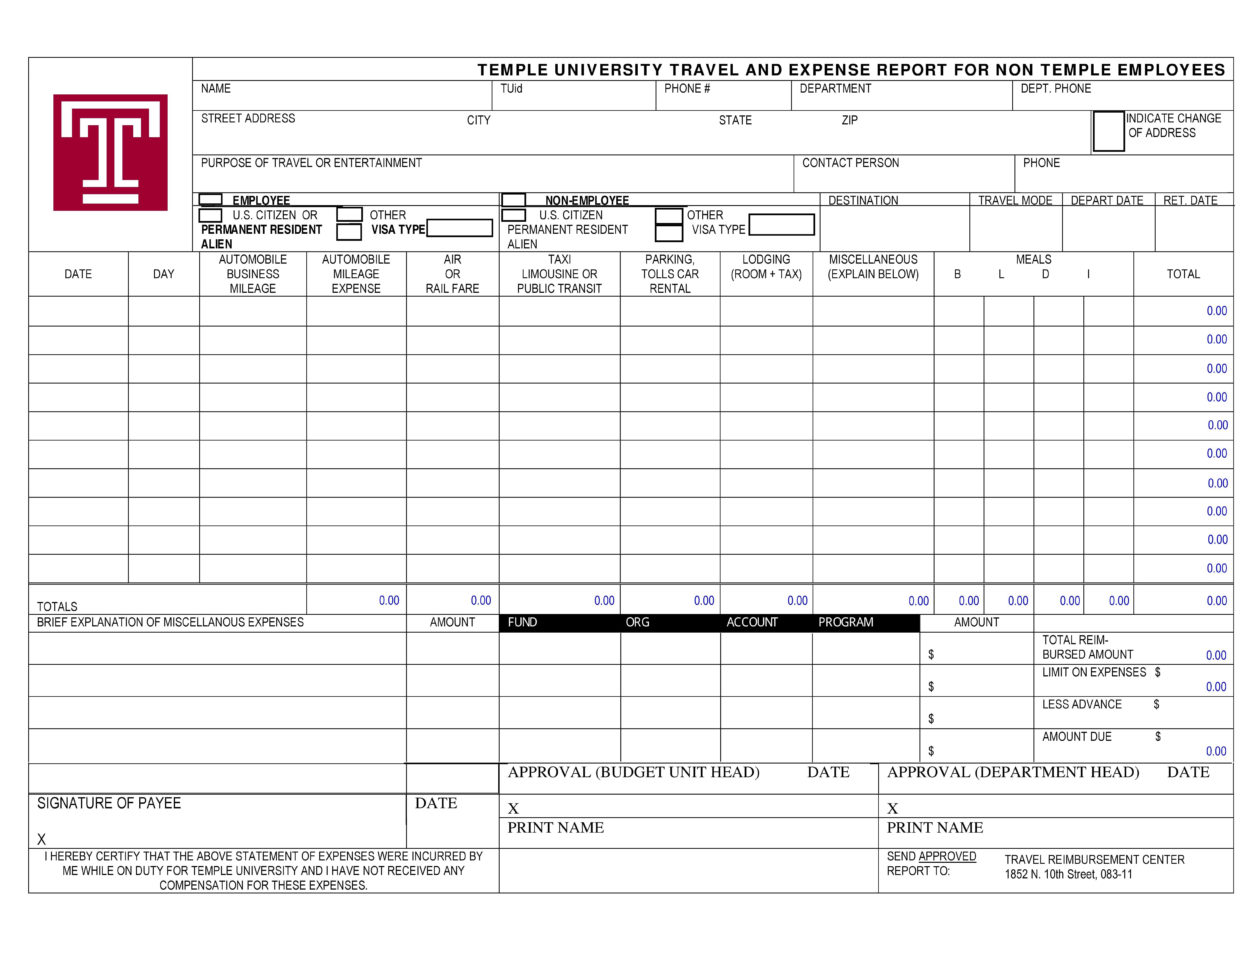 detailed expense report template  40  Expense Report Templates To Help You Save Money   Template Lab Intended For Detailed Expense Report Template Detailed Expense Report Template Expense Spreadshee